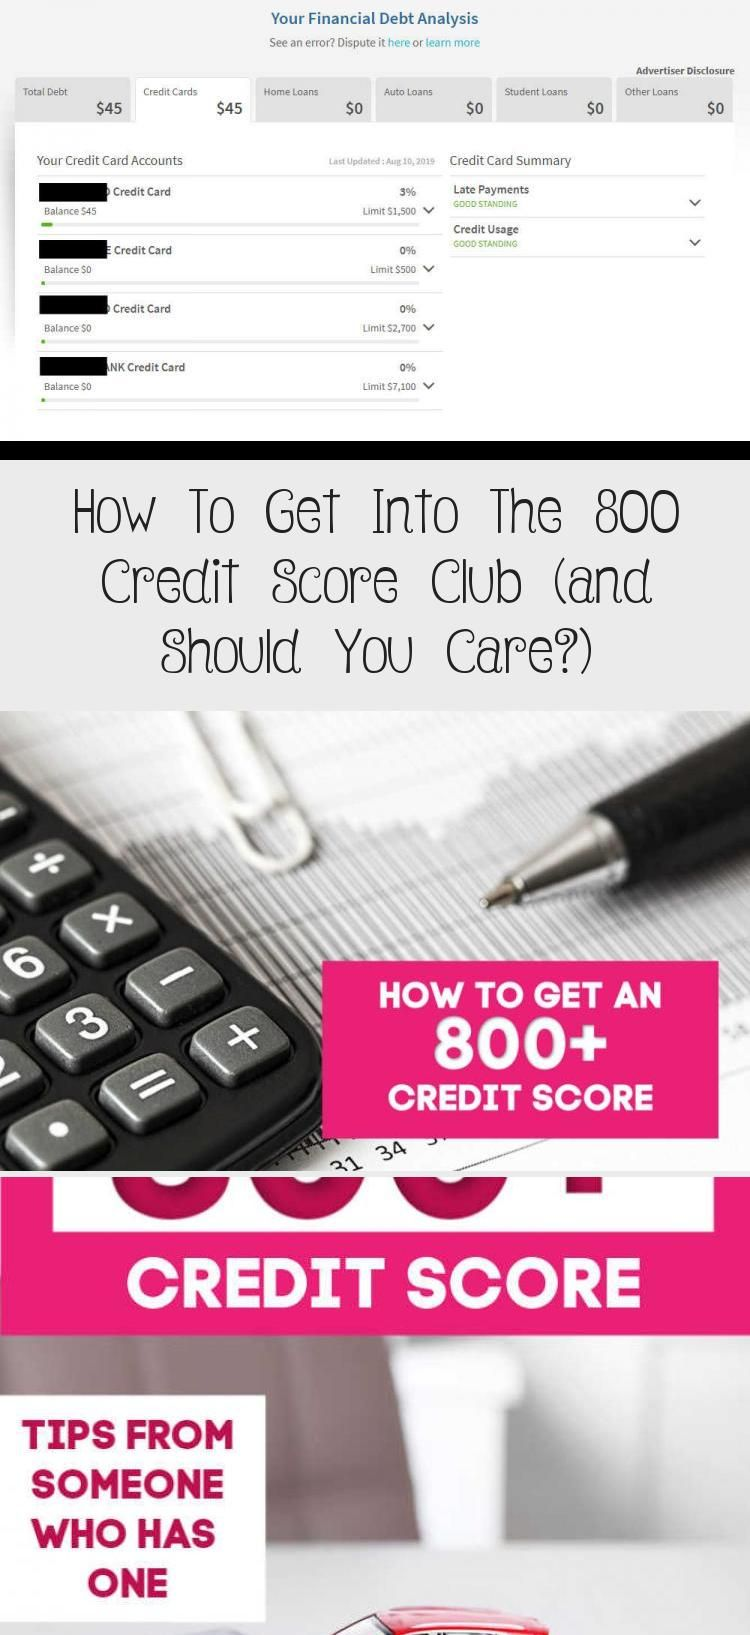 How To Get Approved For Care Credit With No Credit